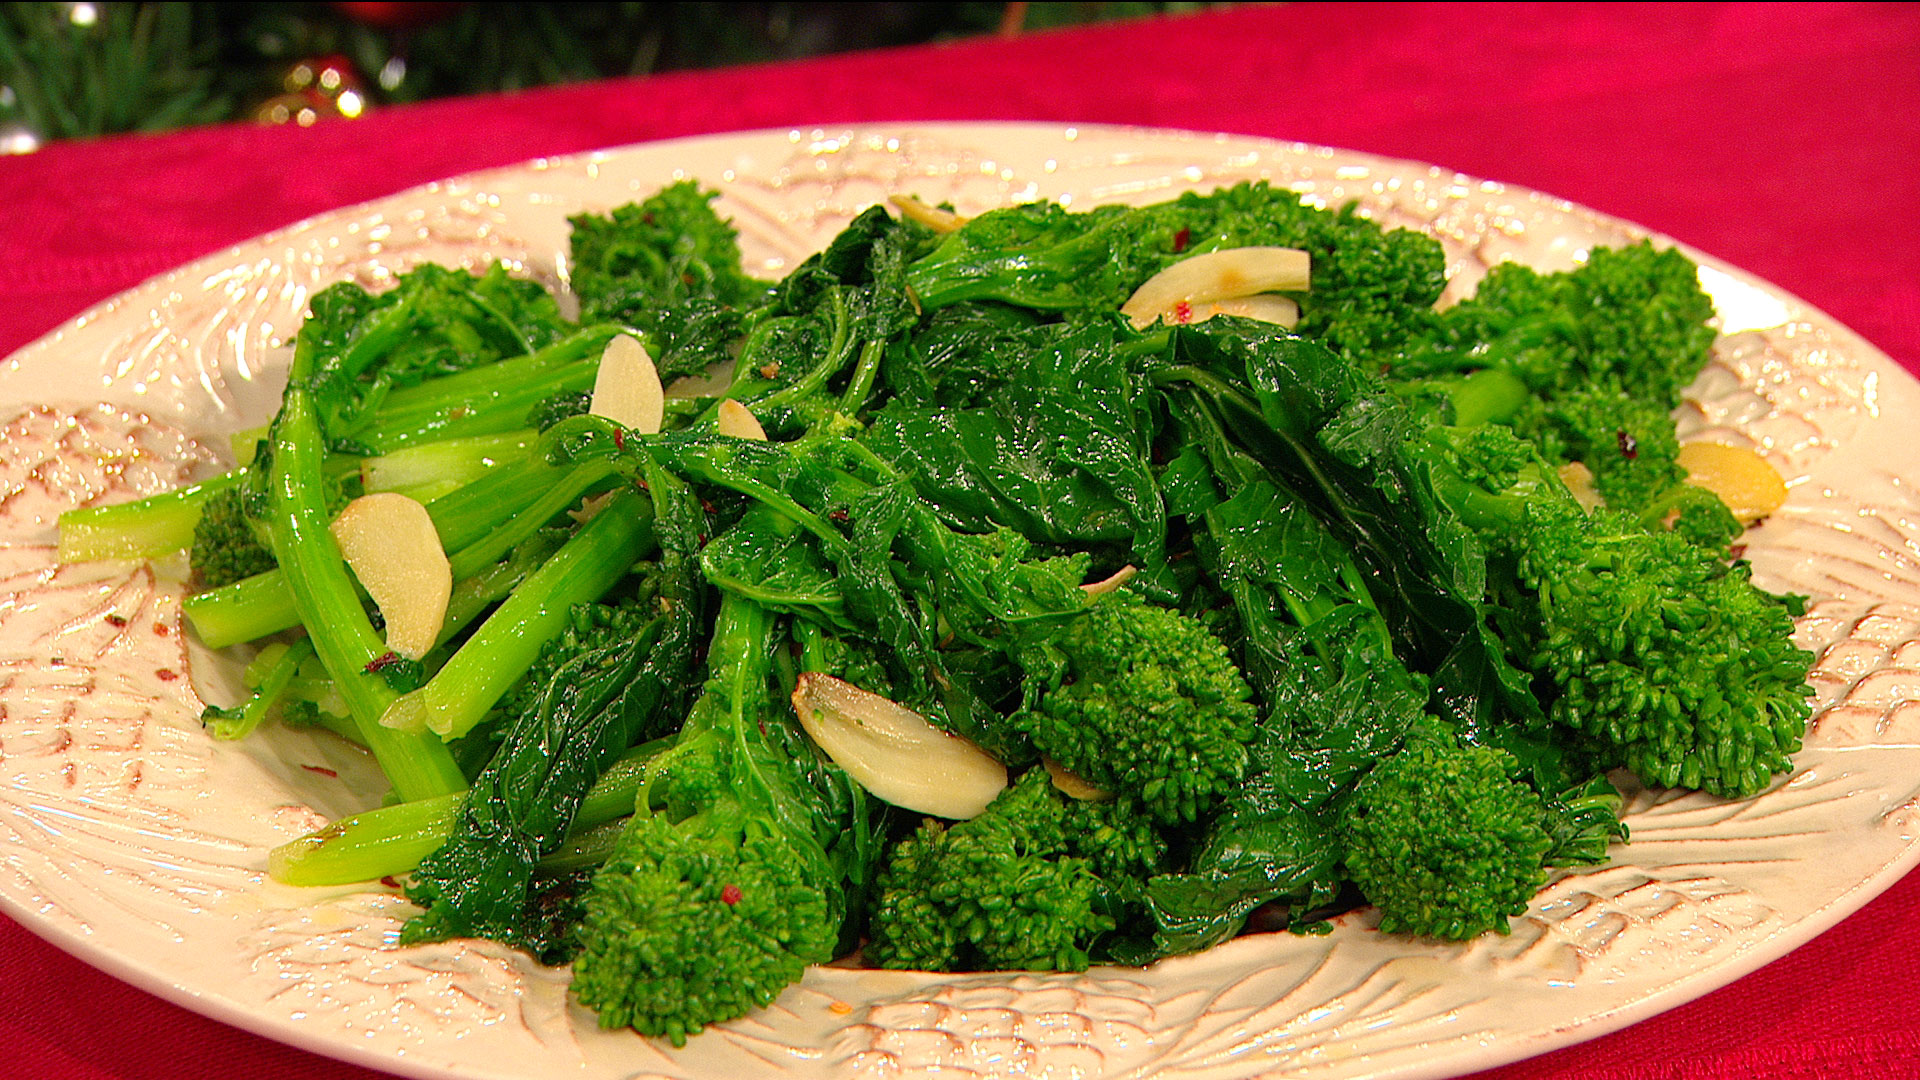 broccoli rabe with oil and garlic broccoli di rabe all